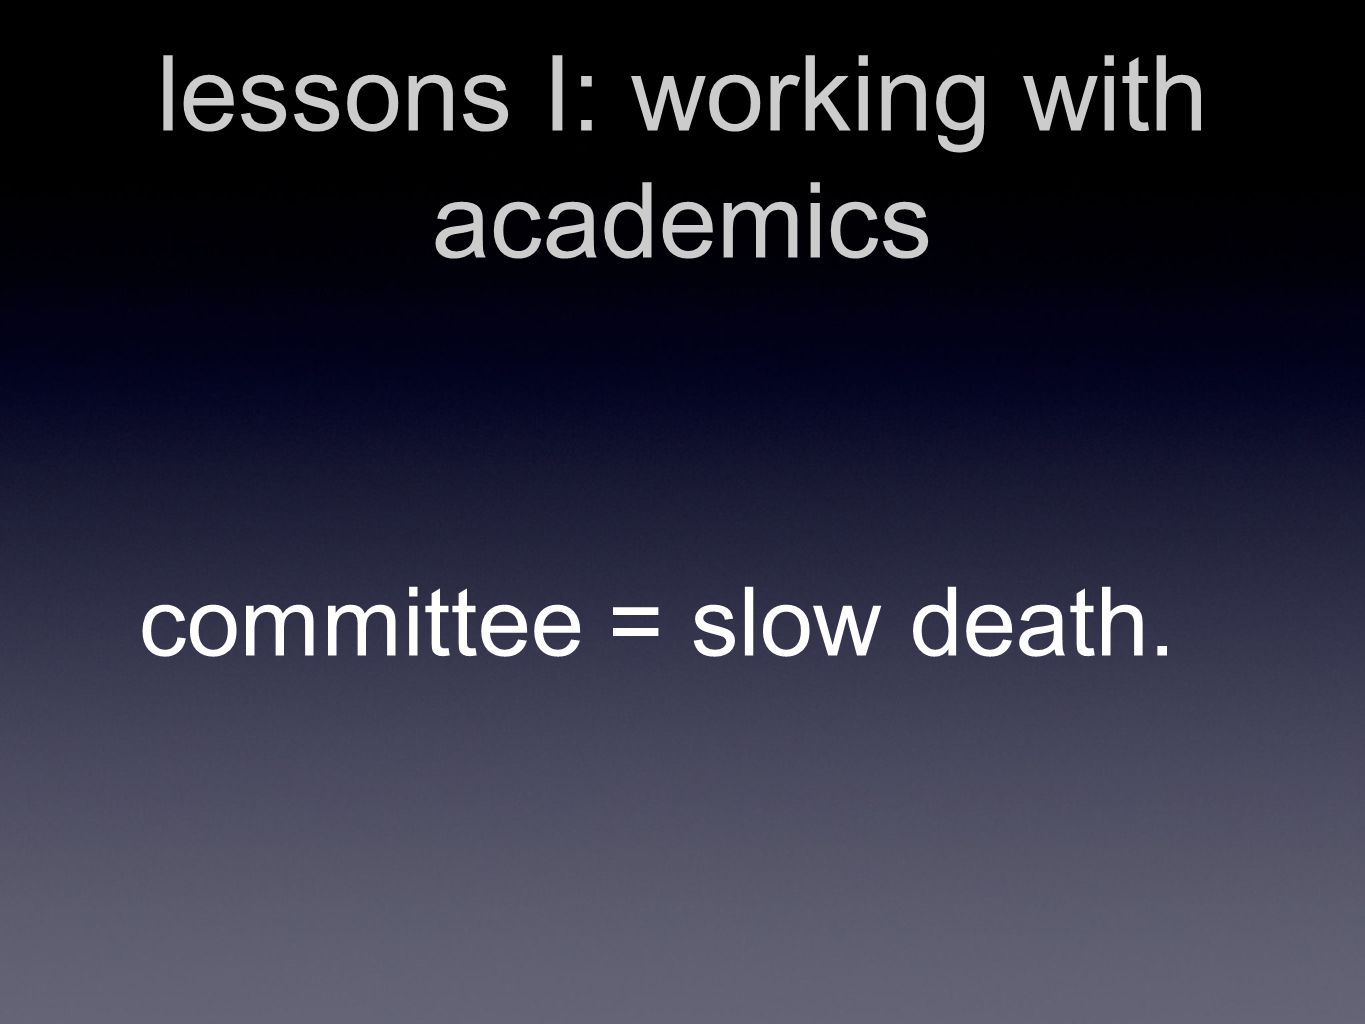 lessons I: working with academics committee = slow death.